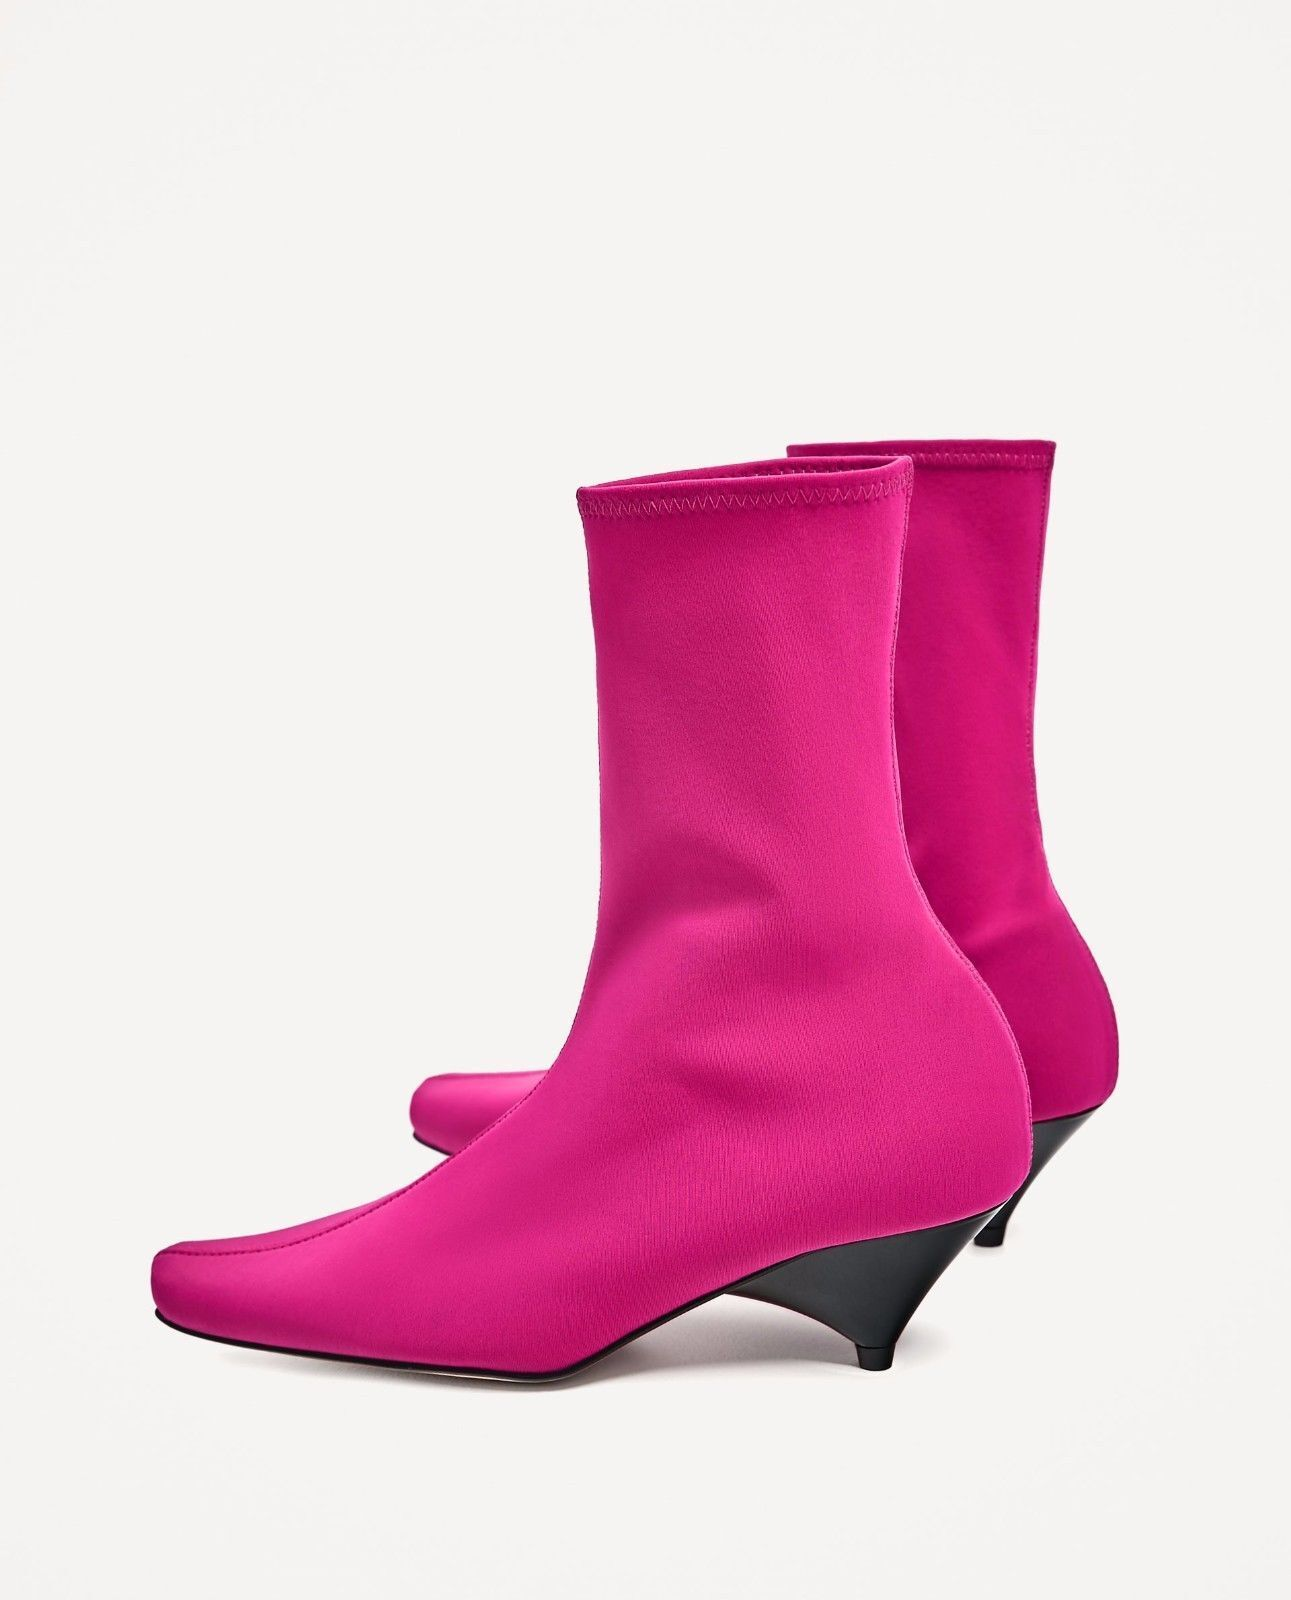 ZARA NEW FUCHSIA SOCK ANKLE bottes ALL TailleS 1114 201